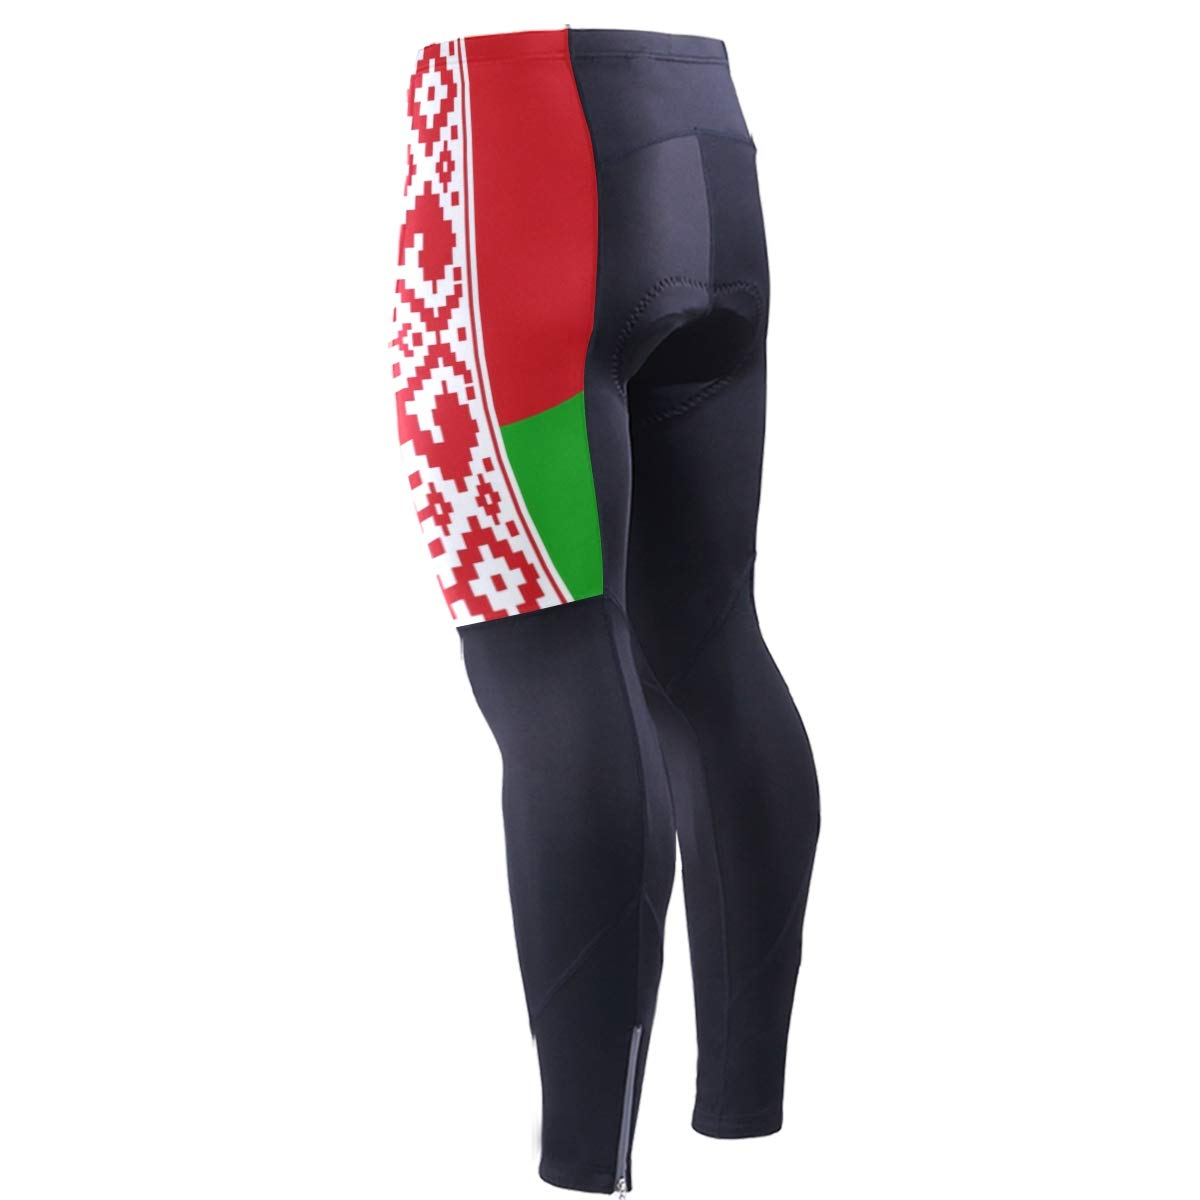 CHINEIN Mens Cycling Jersey Long Sleeve with 3 Rear Pockets Suit Belarus Flag